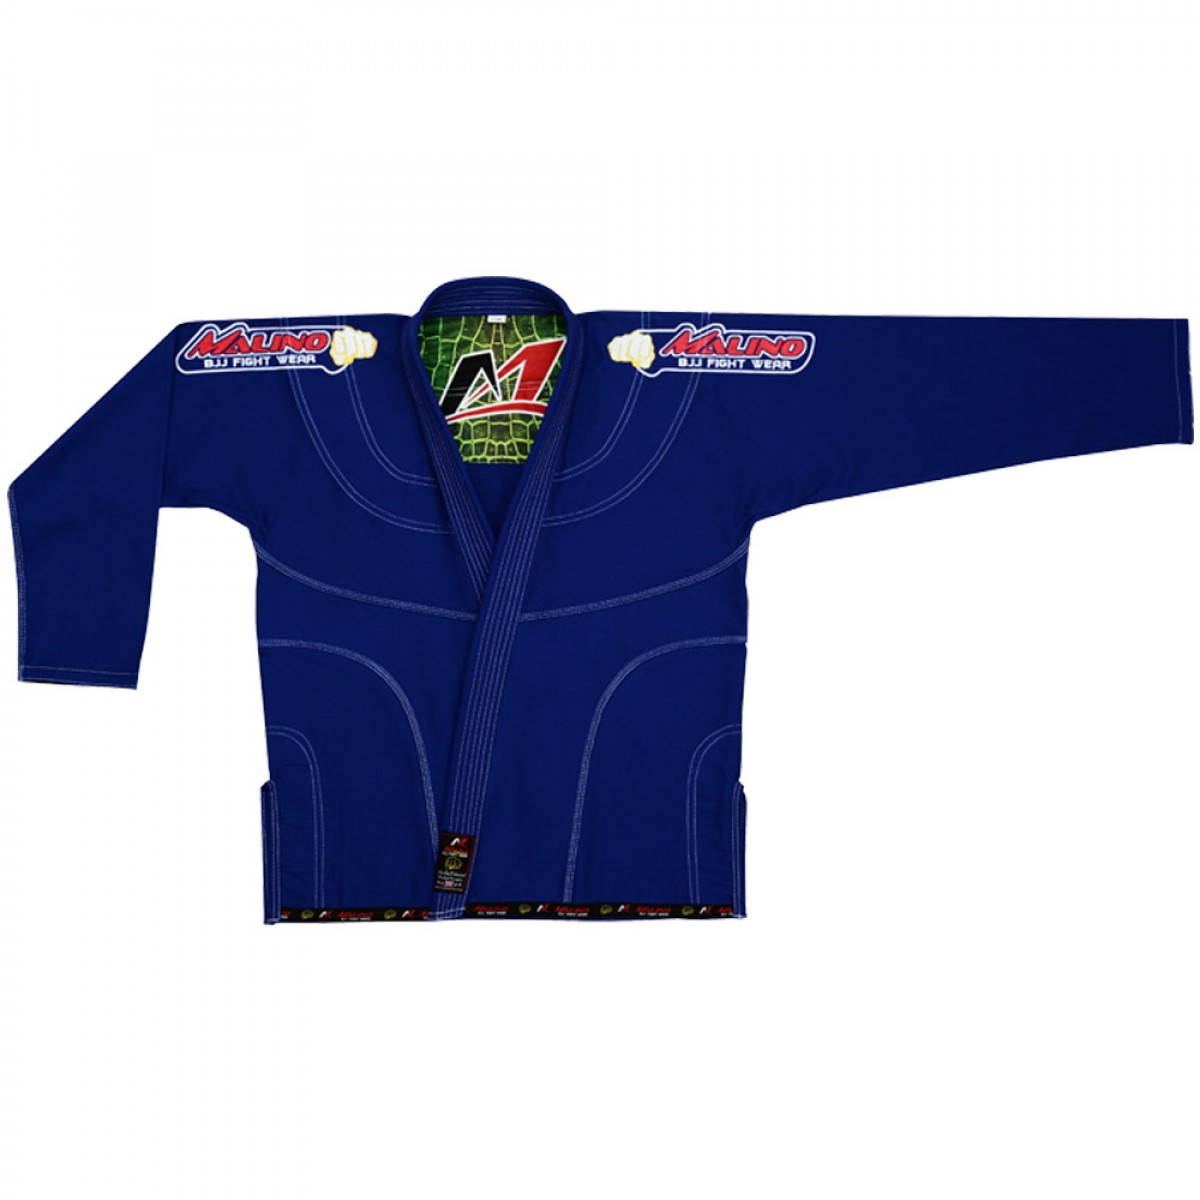 Malino BJJ Gi Crocodile Blue Pearl Weave Cotton 450Gsm